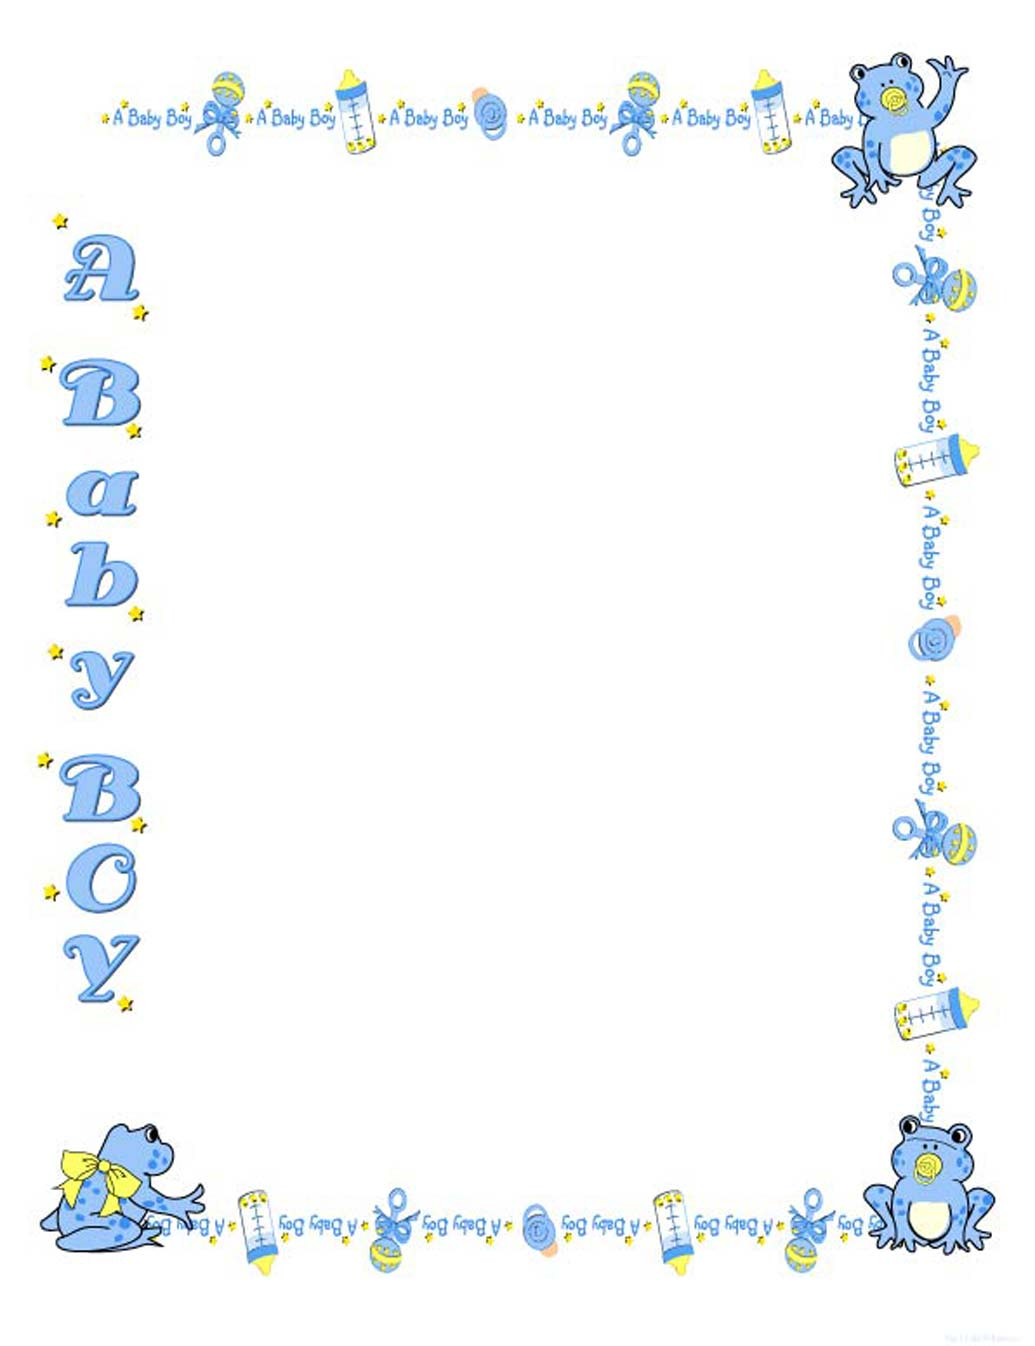 Baby Boy Clip Art Borders Images & Pictures - Becuo